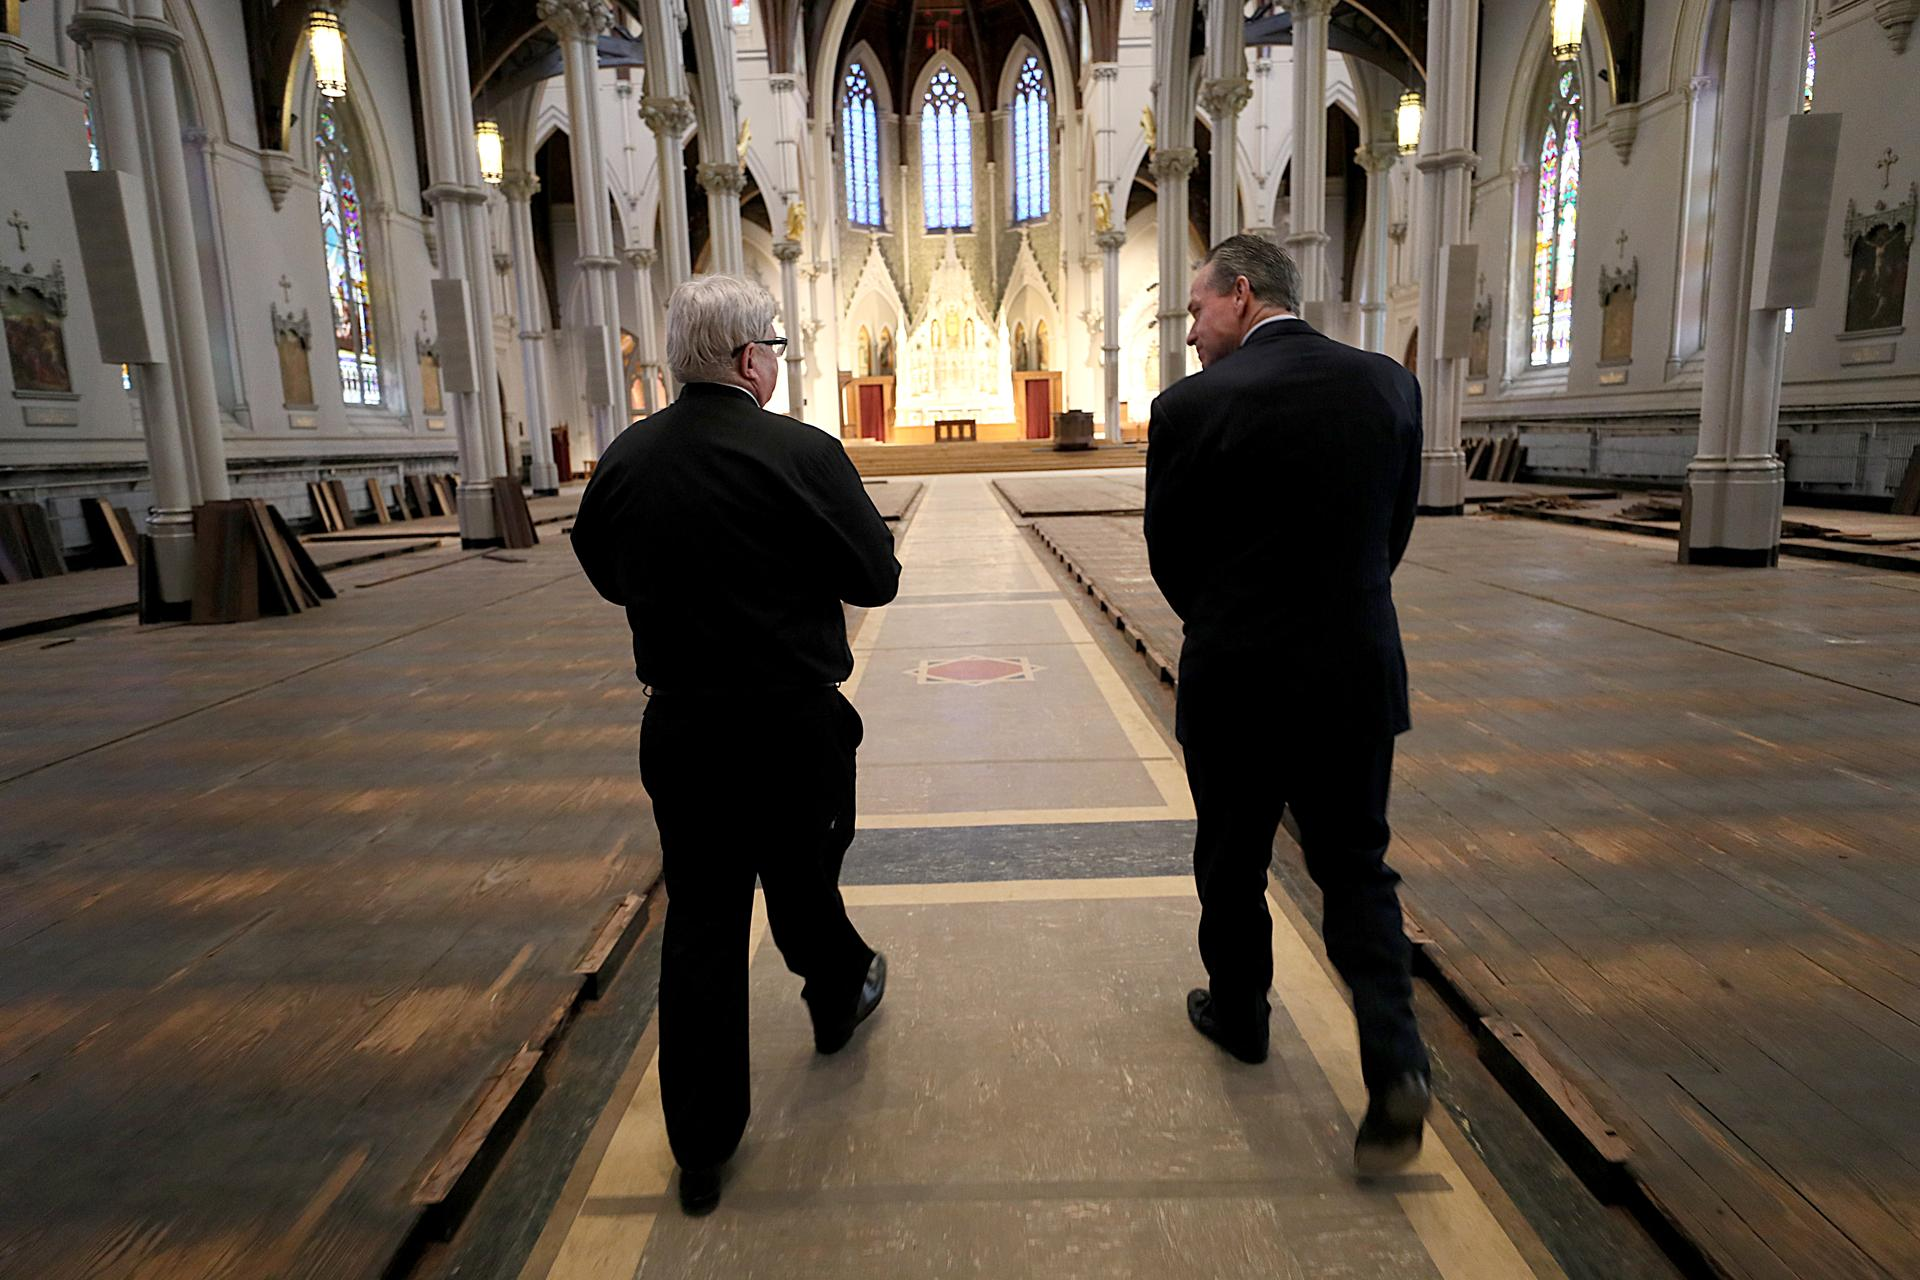 Father Kevin O'Leary (left) and John Fish of Suffolk Construction walked through the Cathedral of the Holy Cross in Boston.